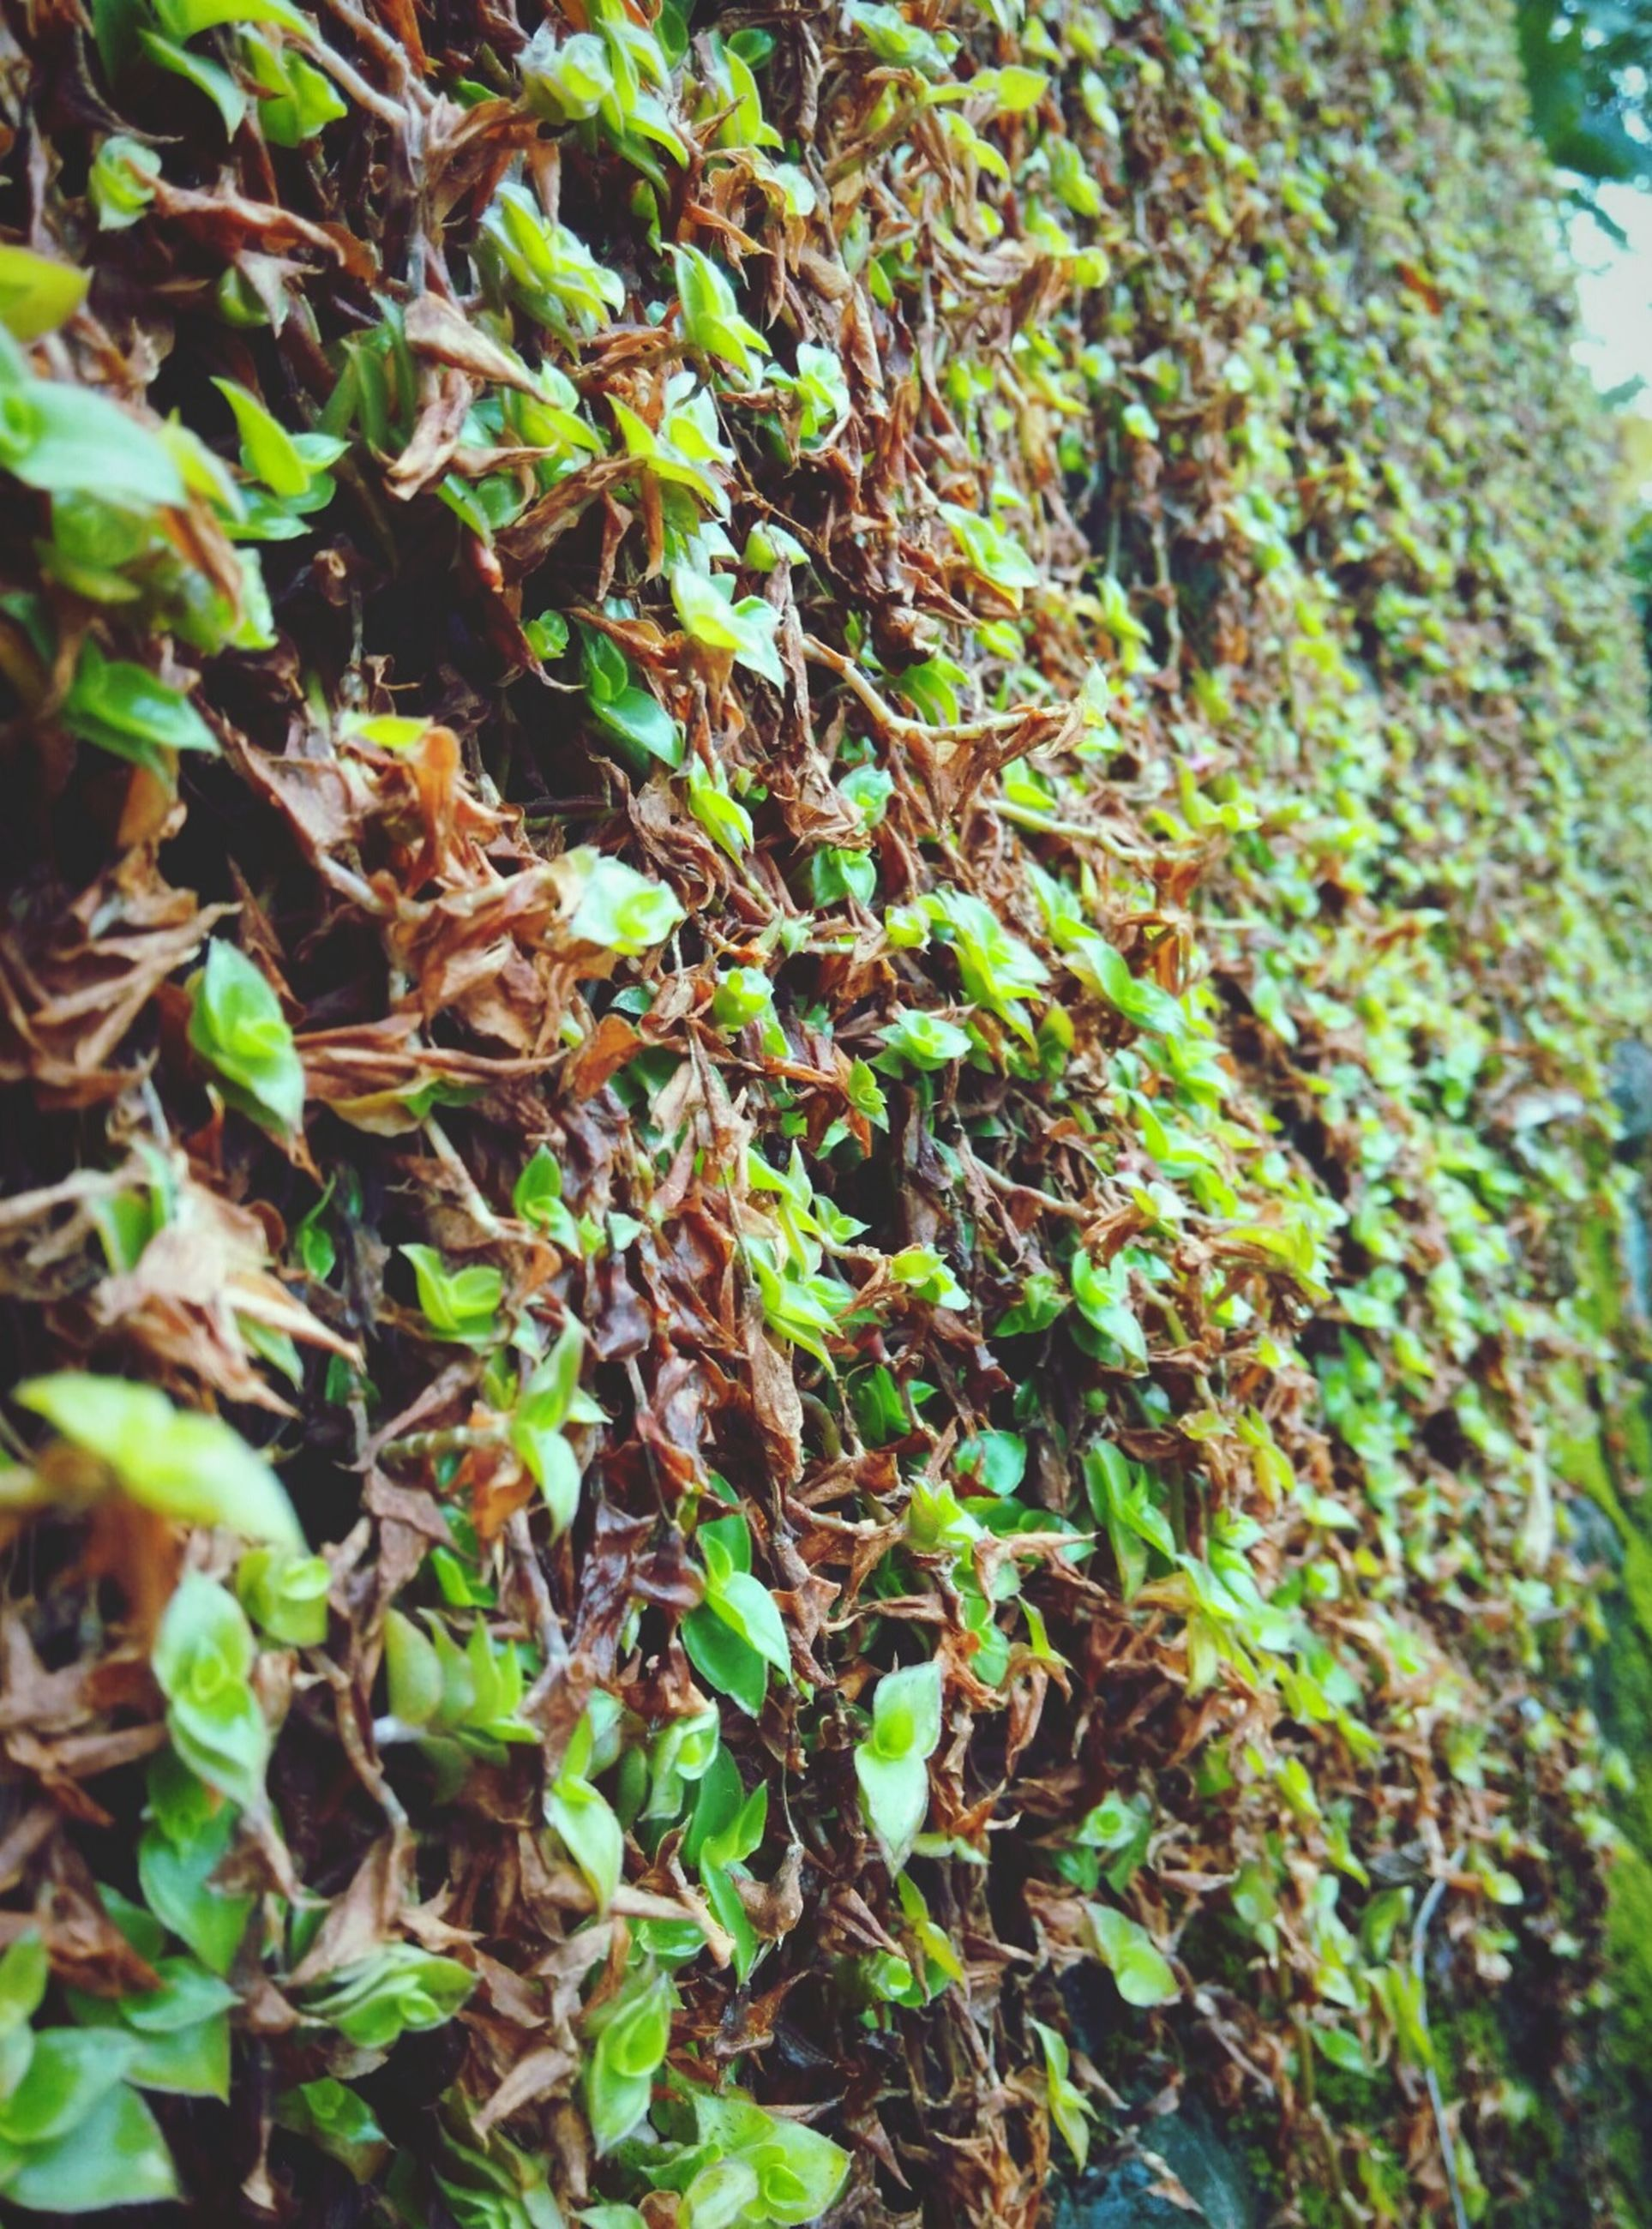 leaf, growth, nature, plant, green color, outdoors, no people, day, tree, beauty in nature, ivy, close-up, backgrounds, freshness